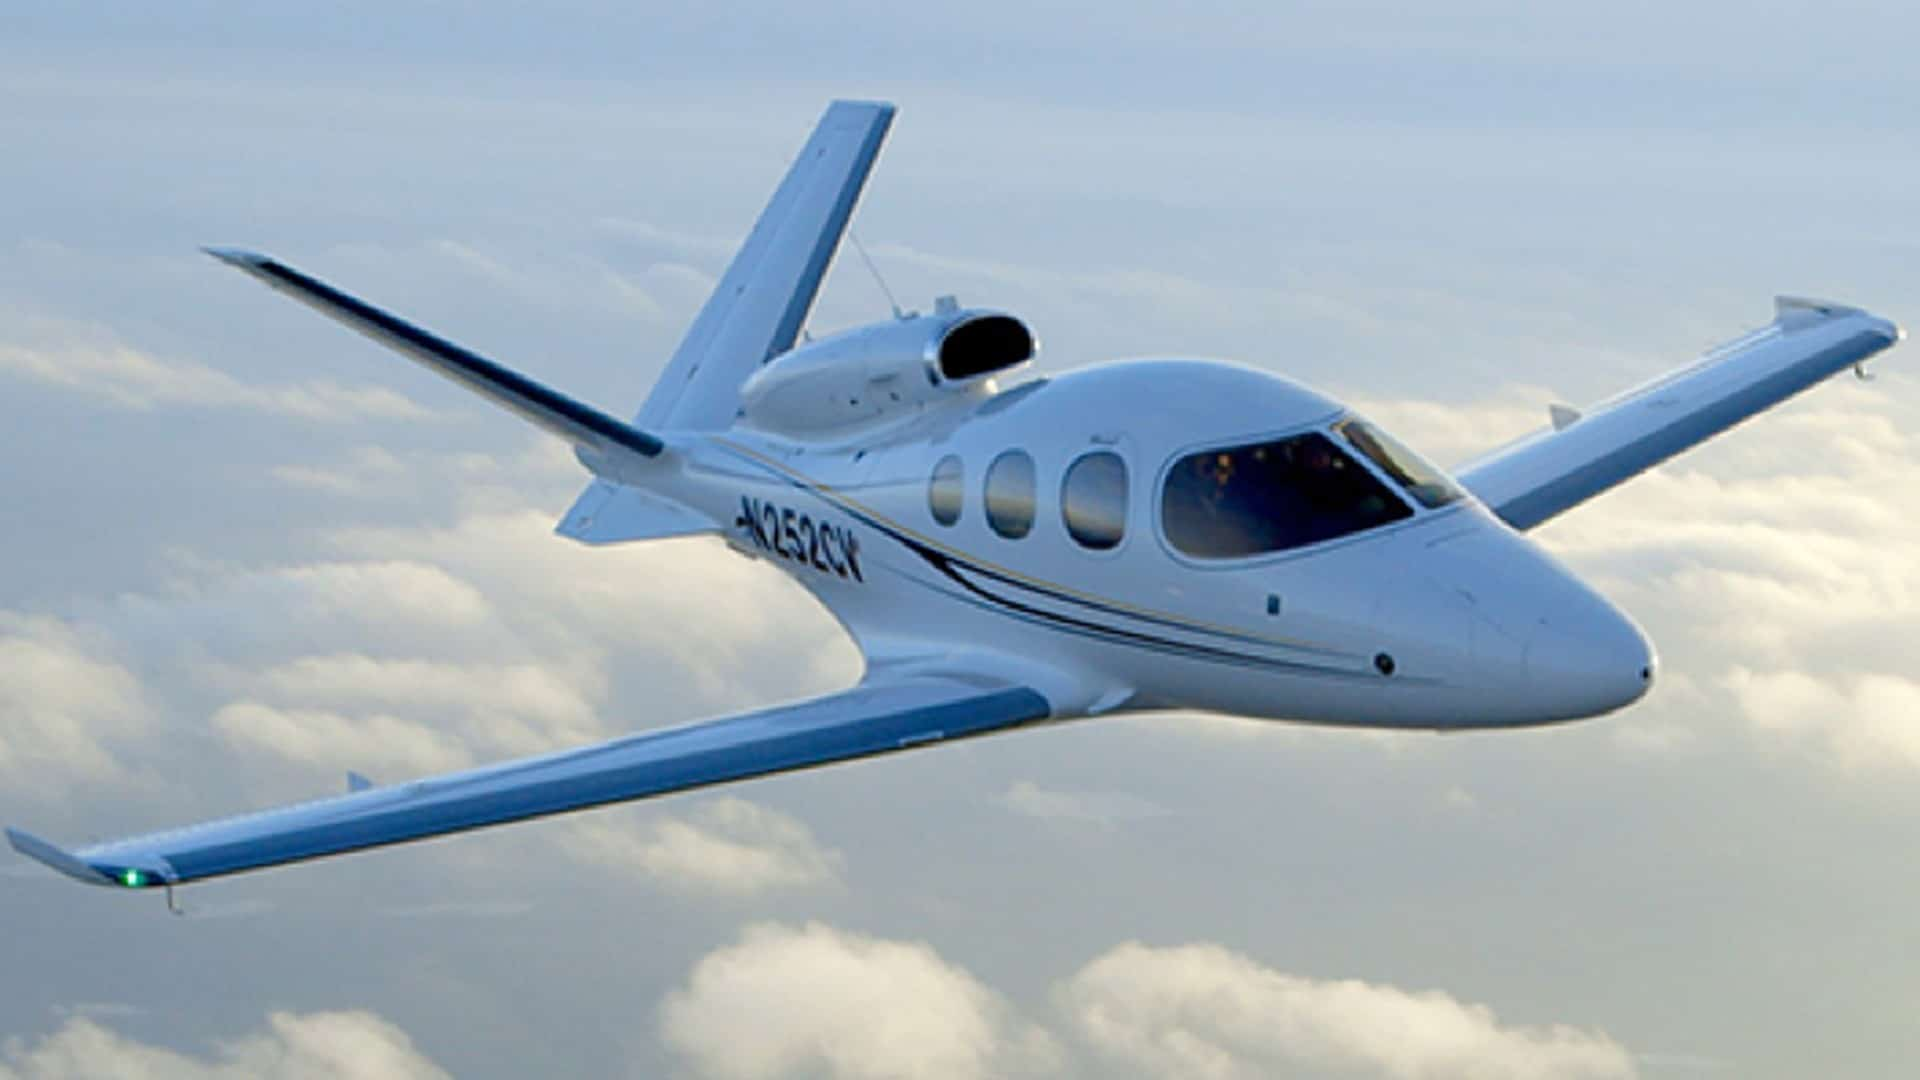 The Vision Jet Achieves FAA Certification